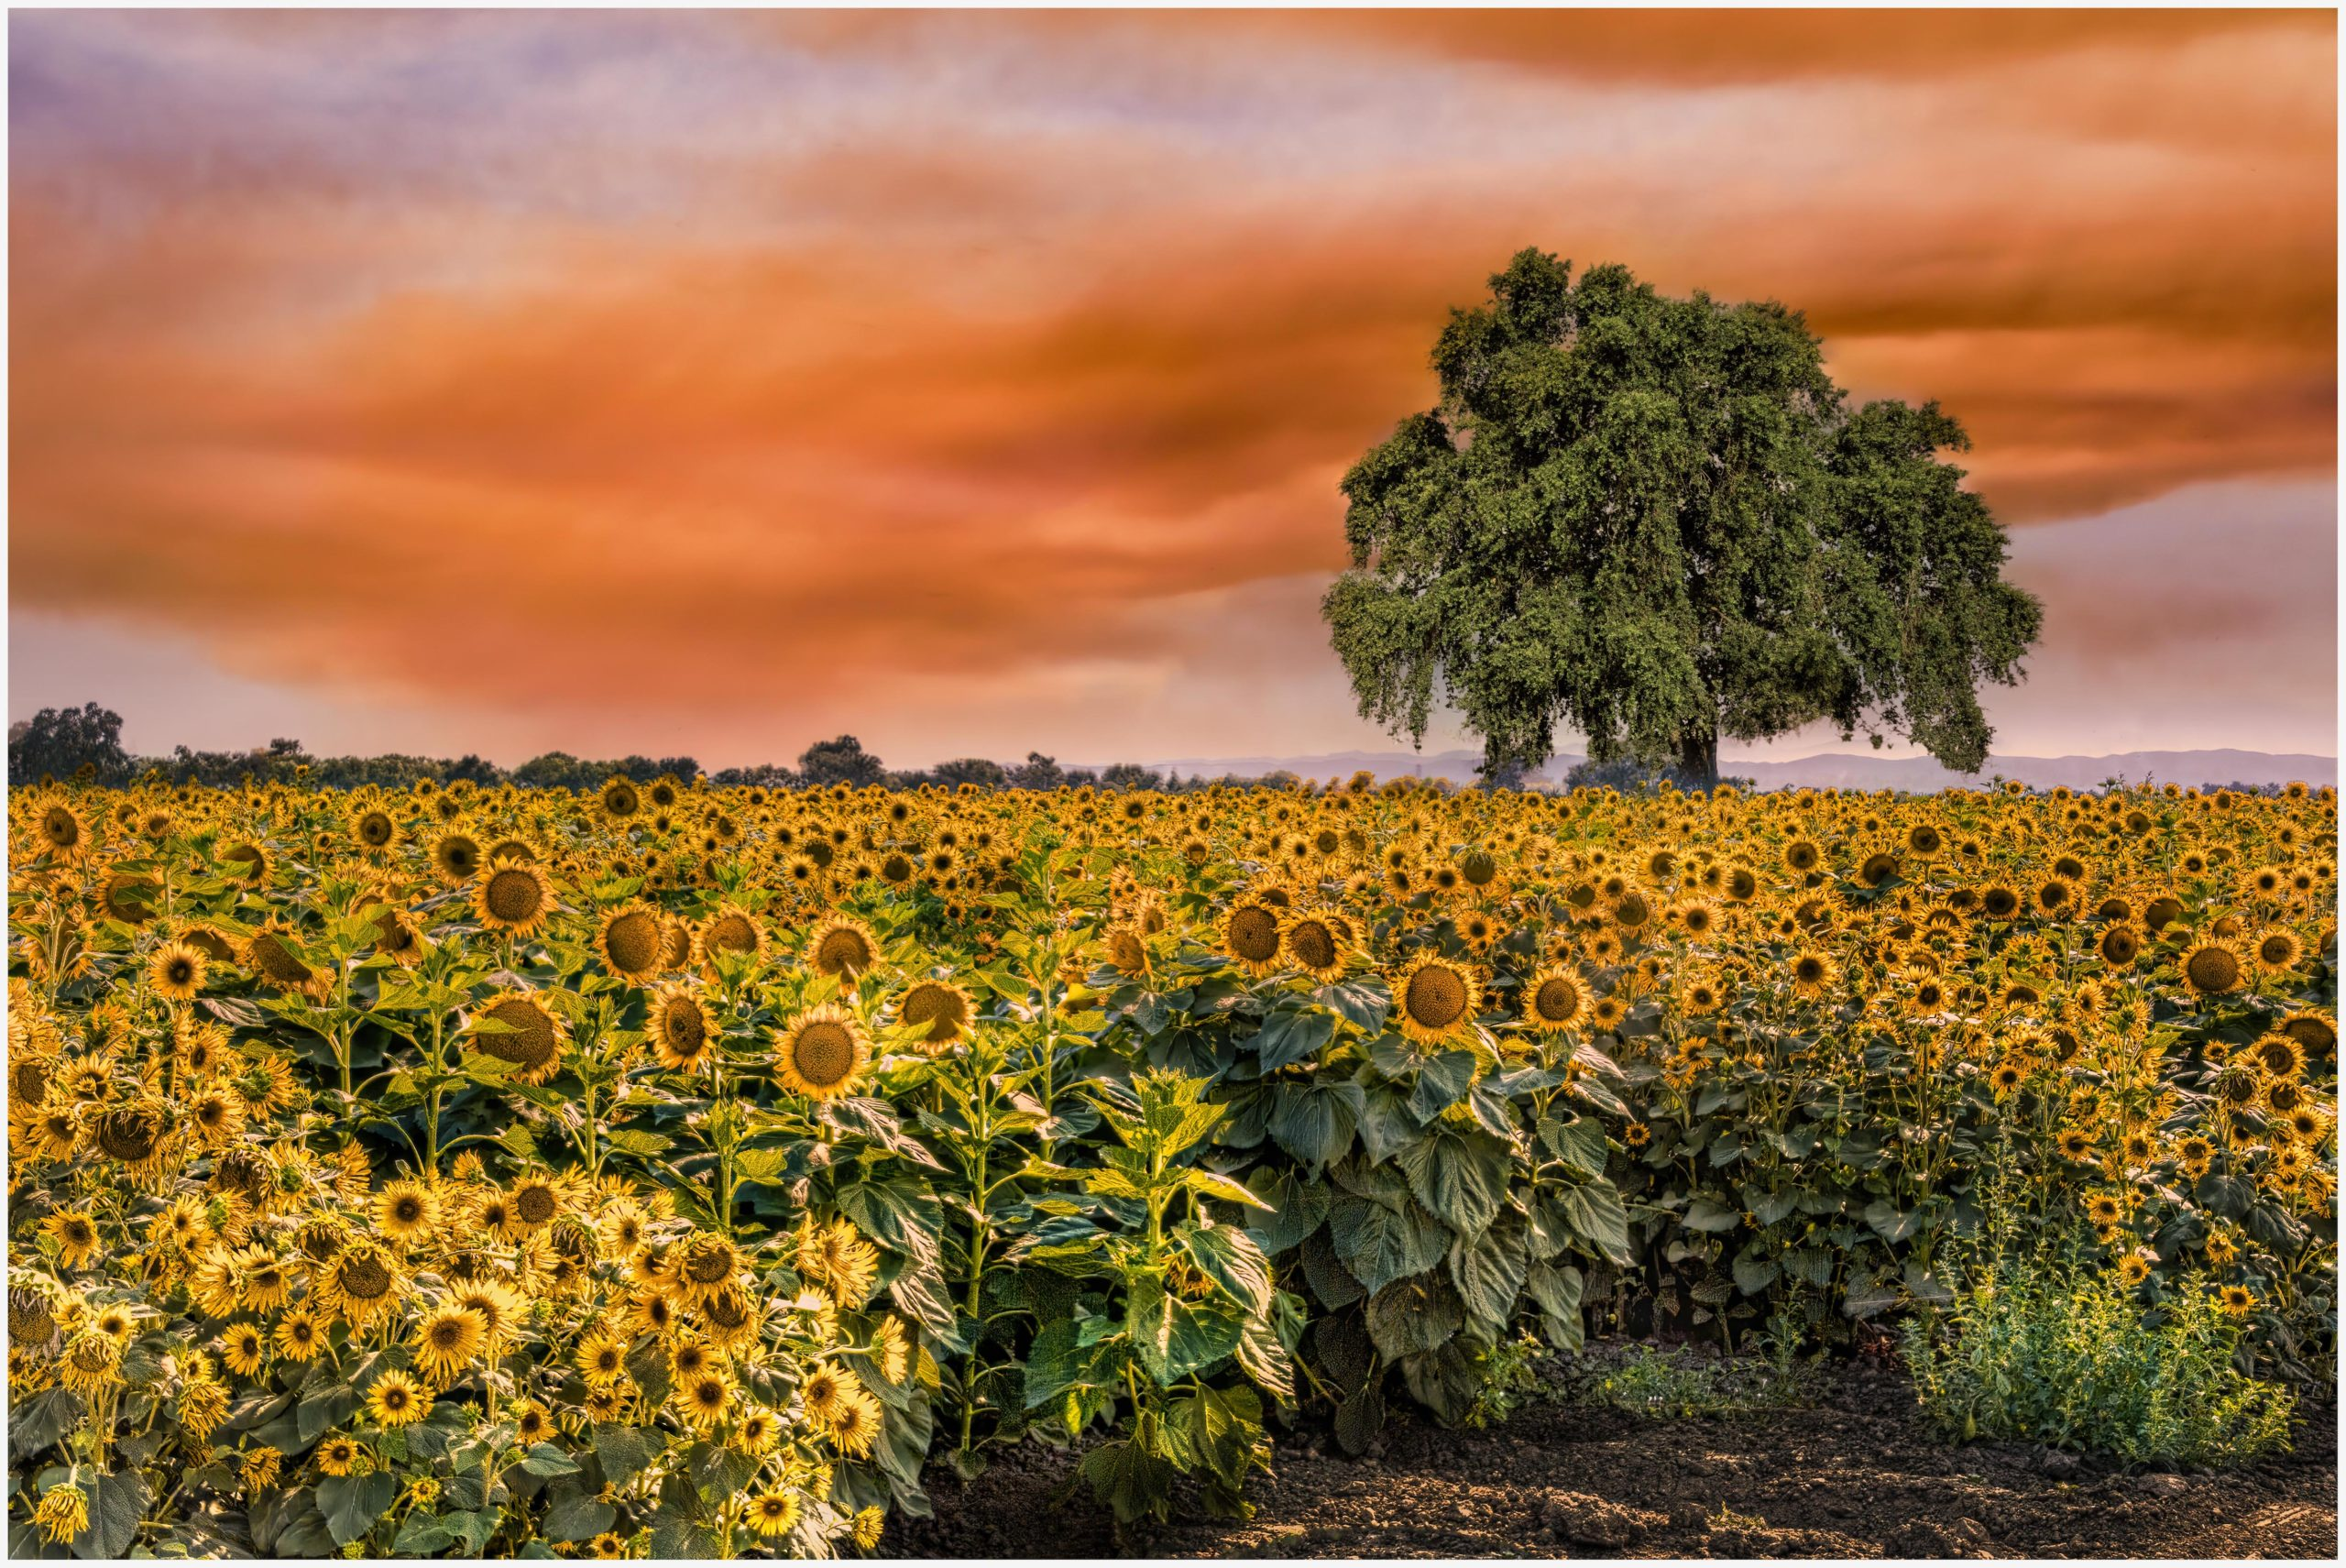 Lucille Van Ommering, Sunflowers Backlit by Napa Wildfires, Photograph